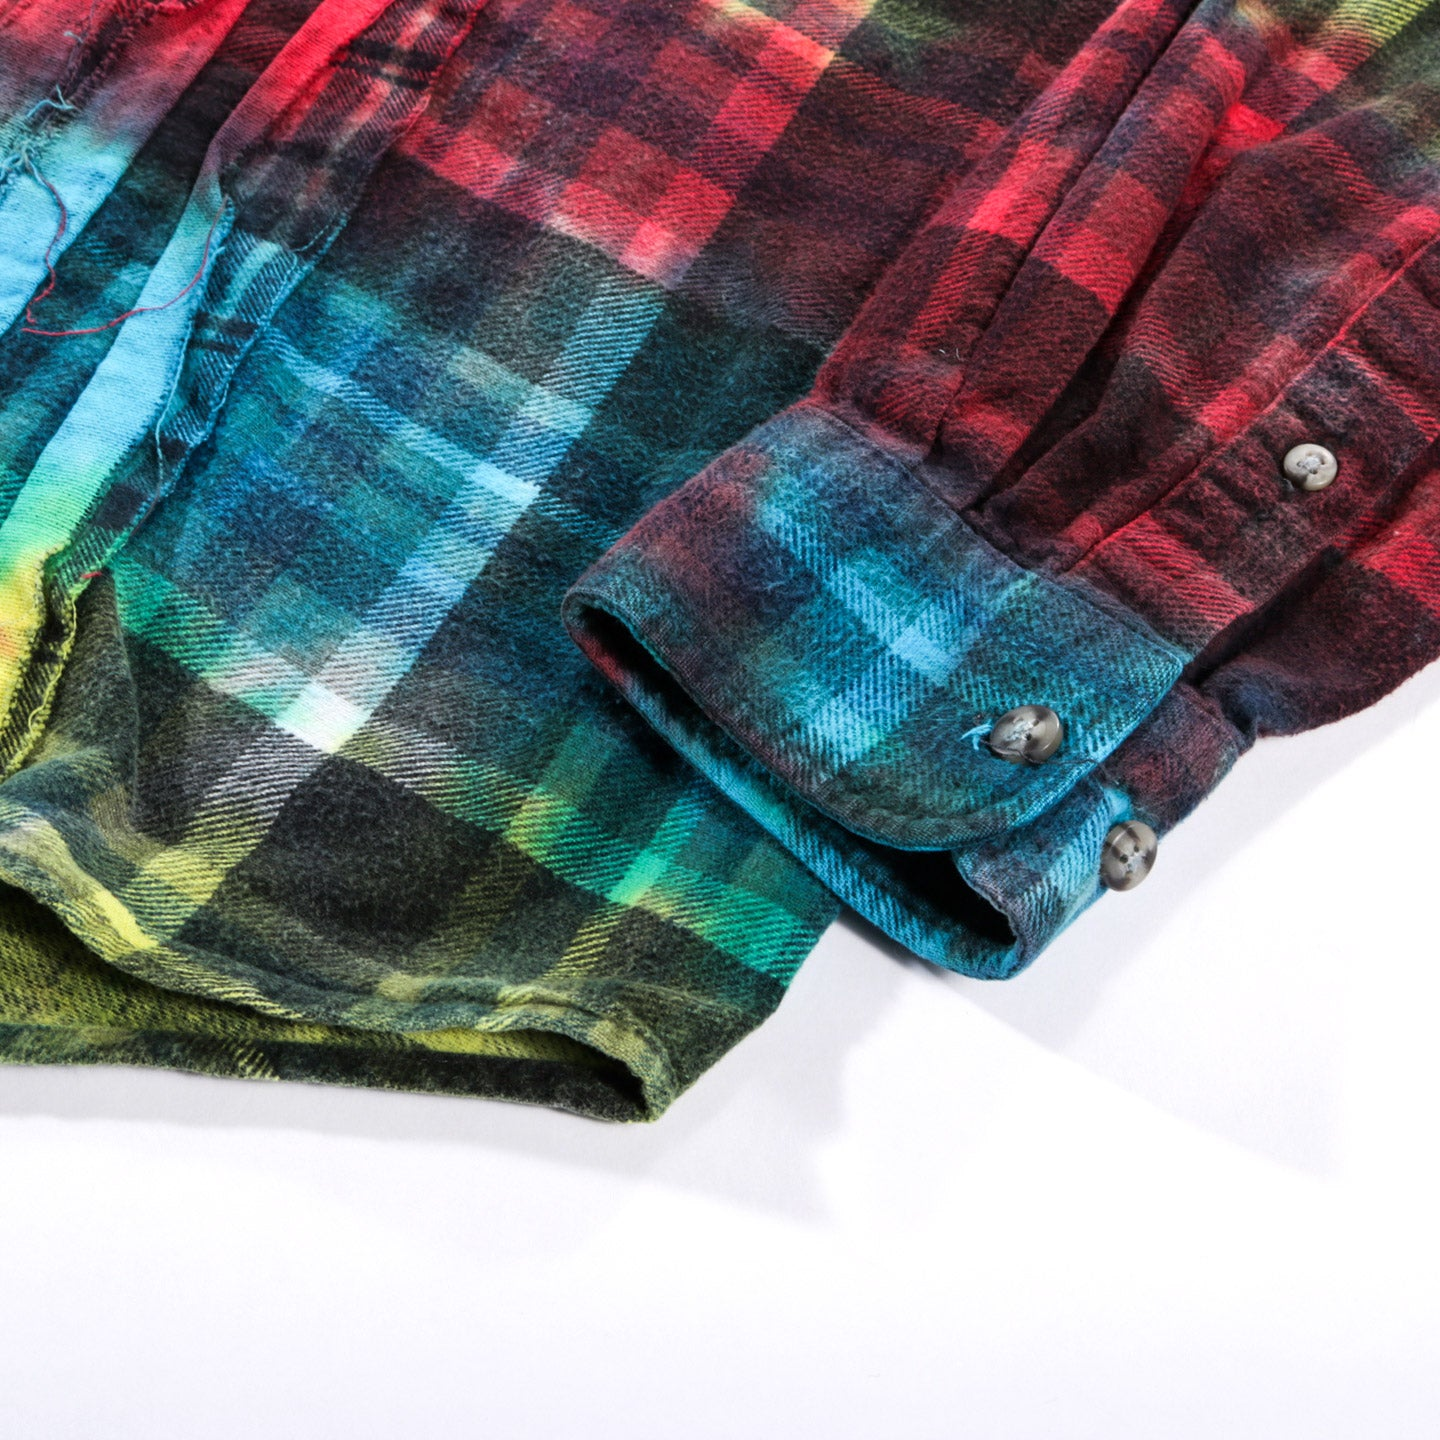 REBUILD BY NEEDLES RIBBON FLANNEL SHIRT TIE DYE - S (A)